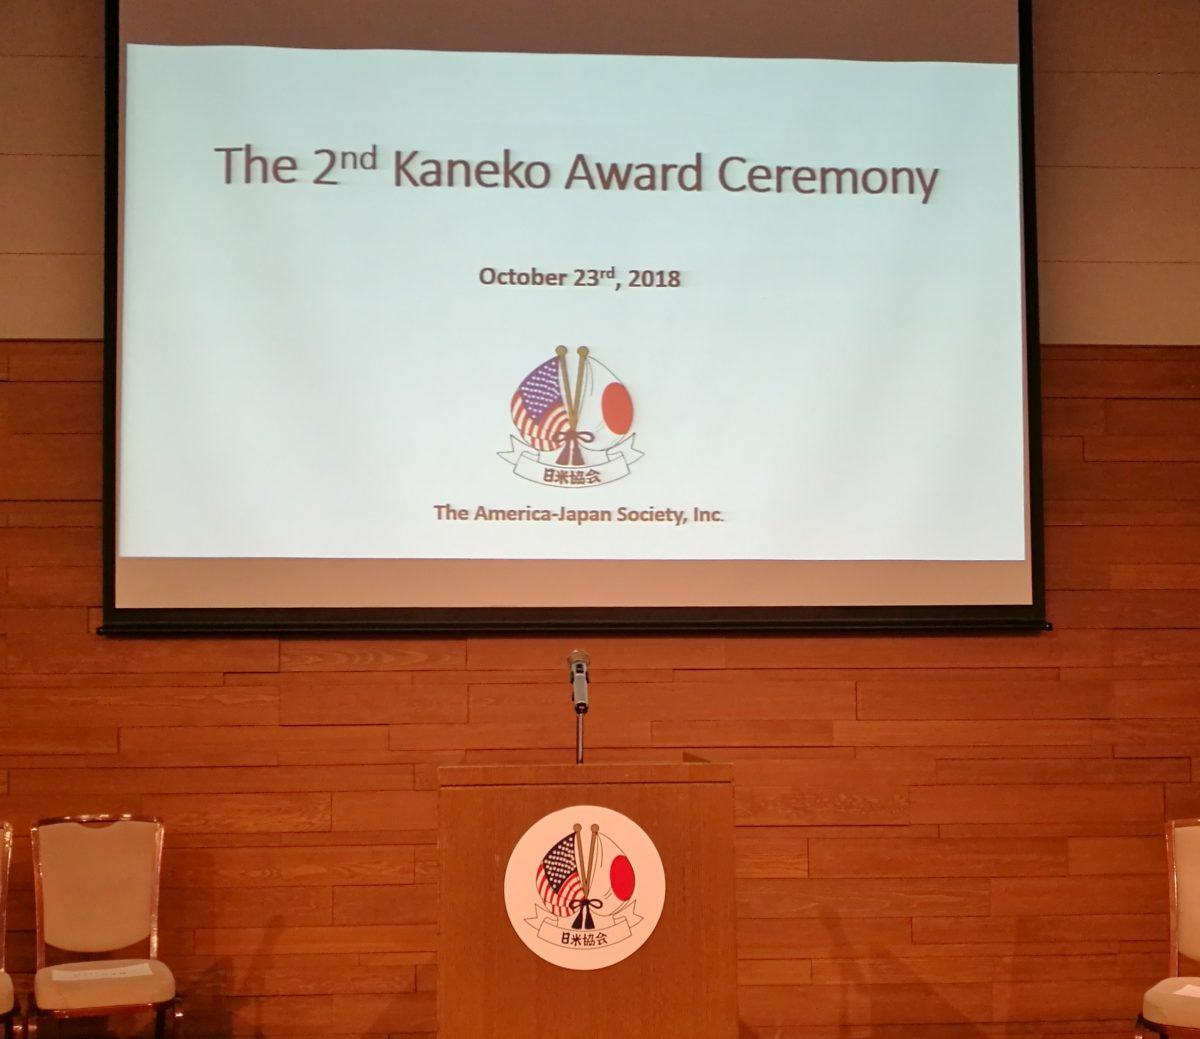 The Second Kaneko Award Ceremony